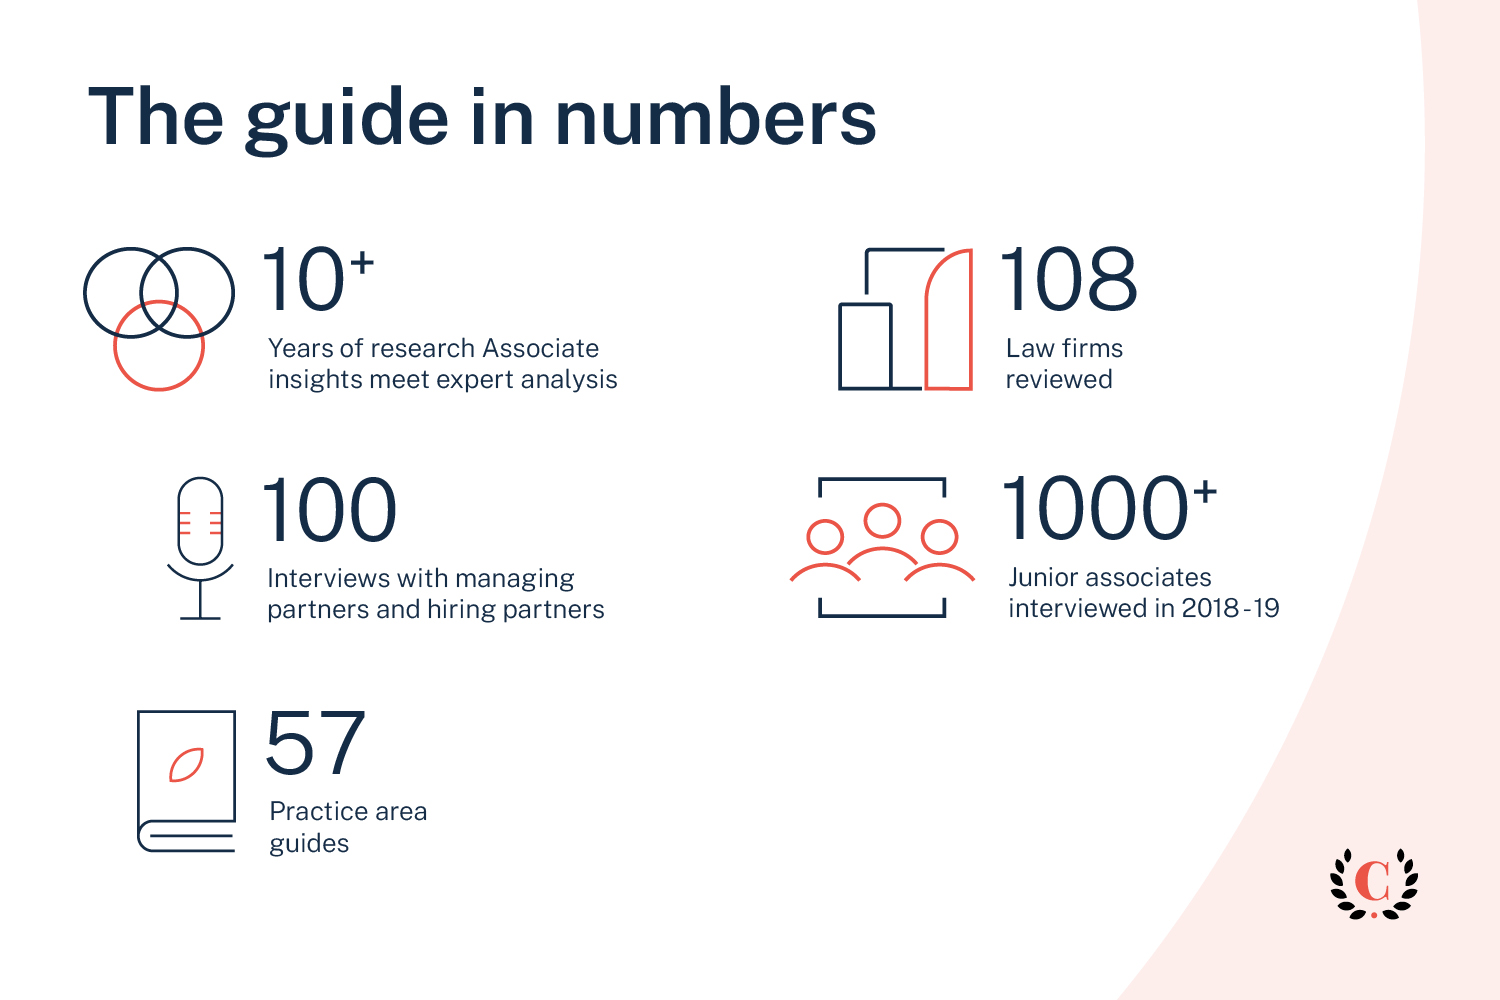 The guide in numbers 2020